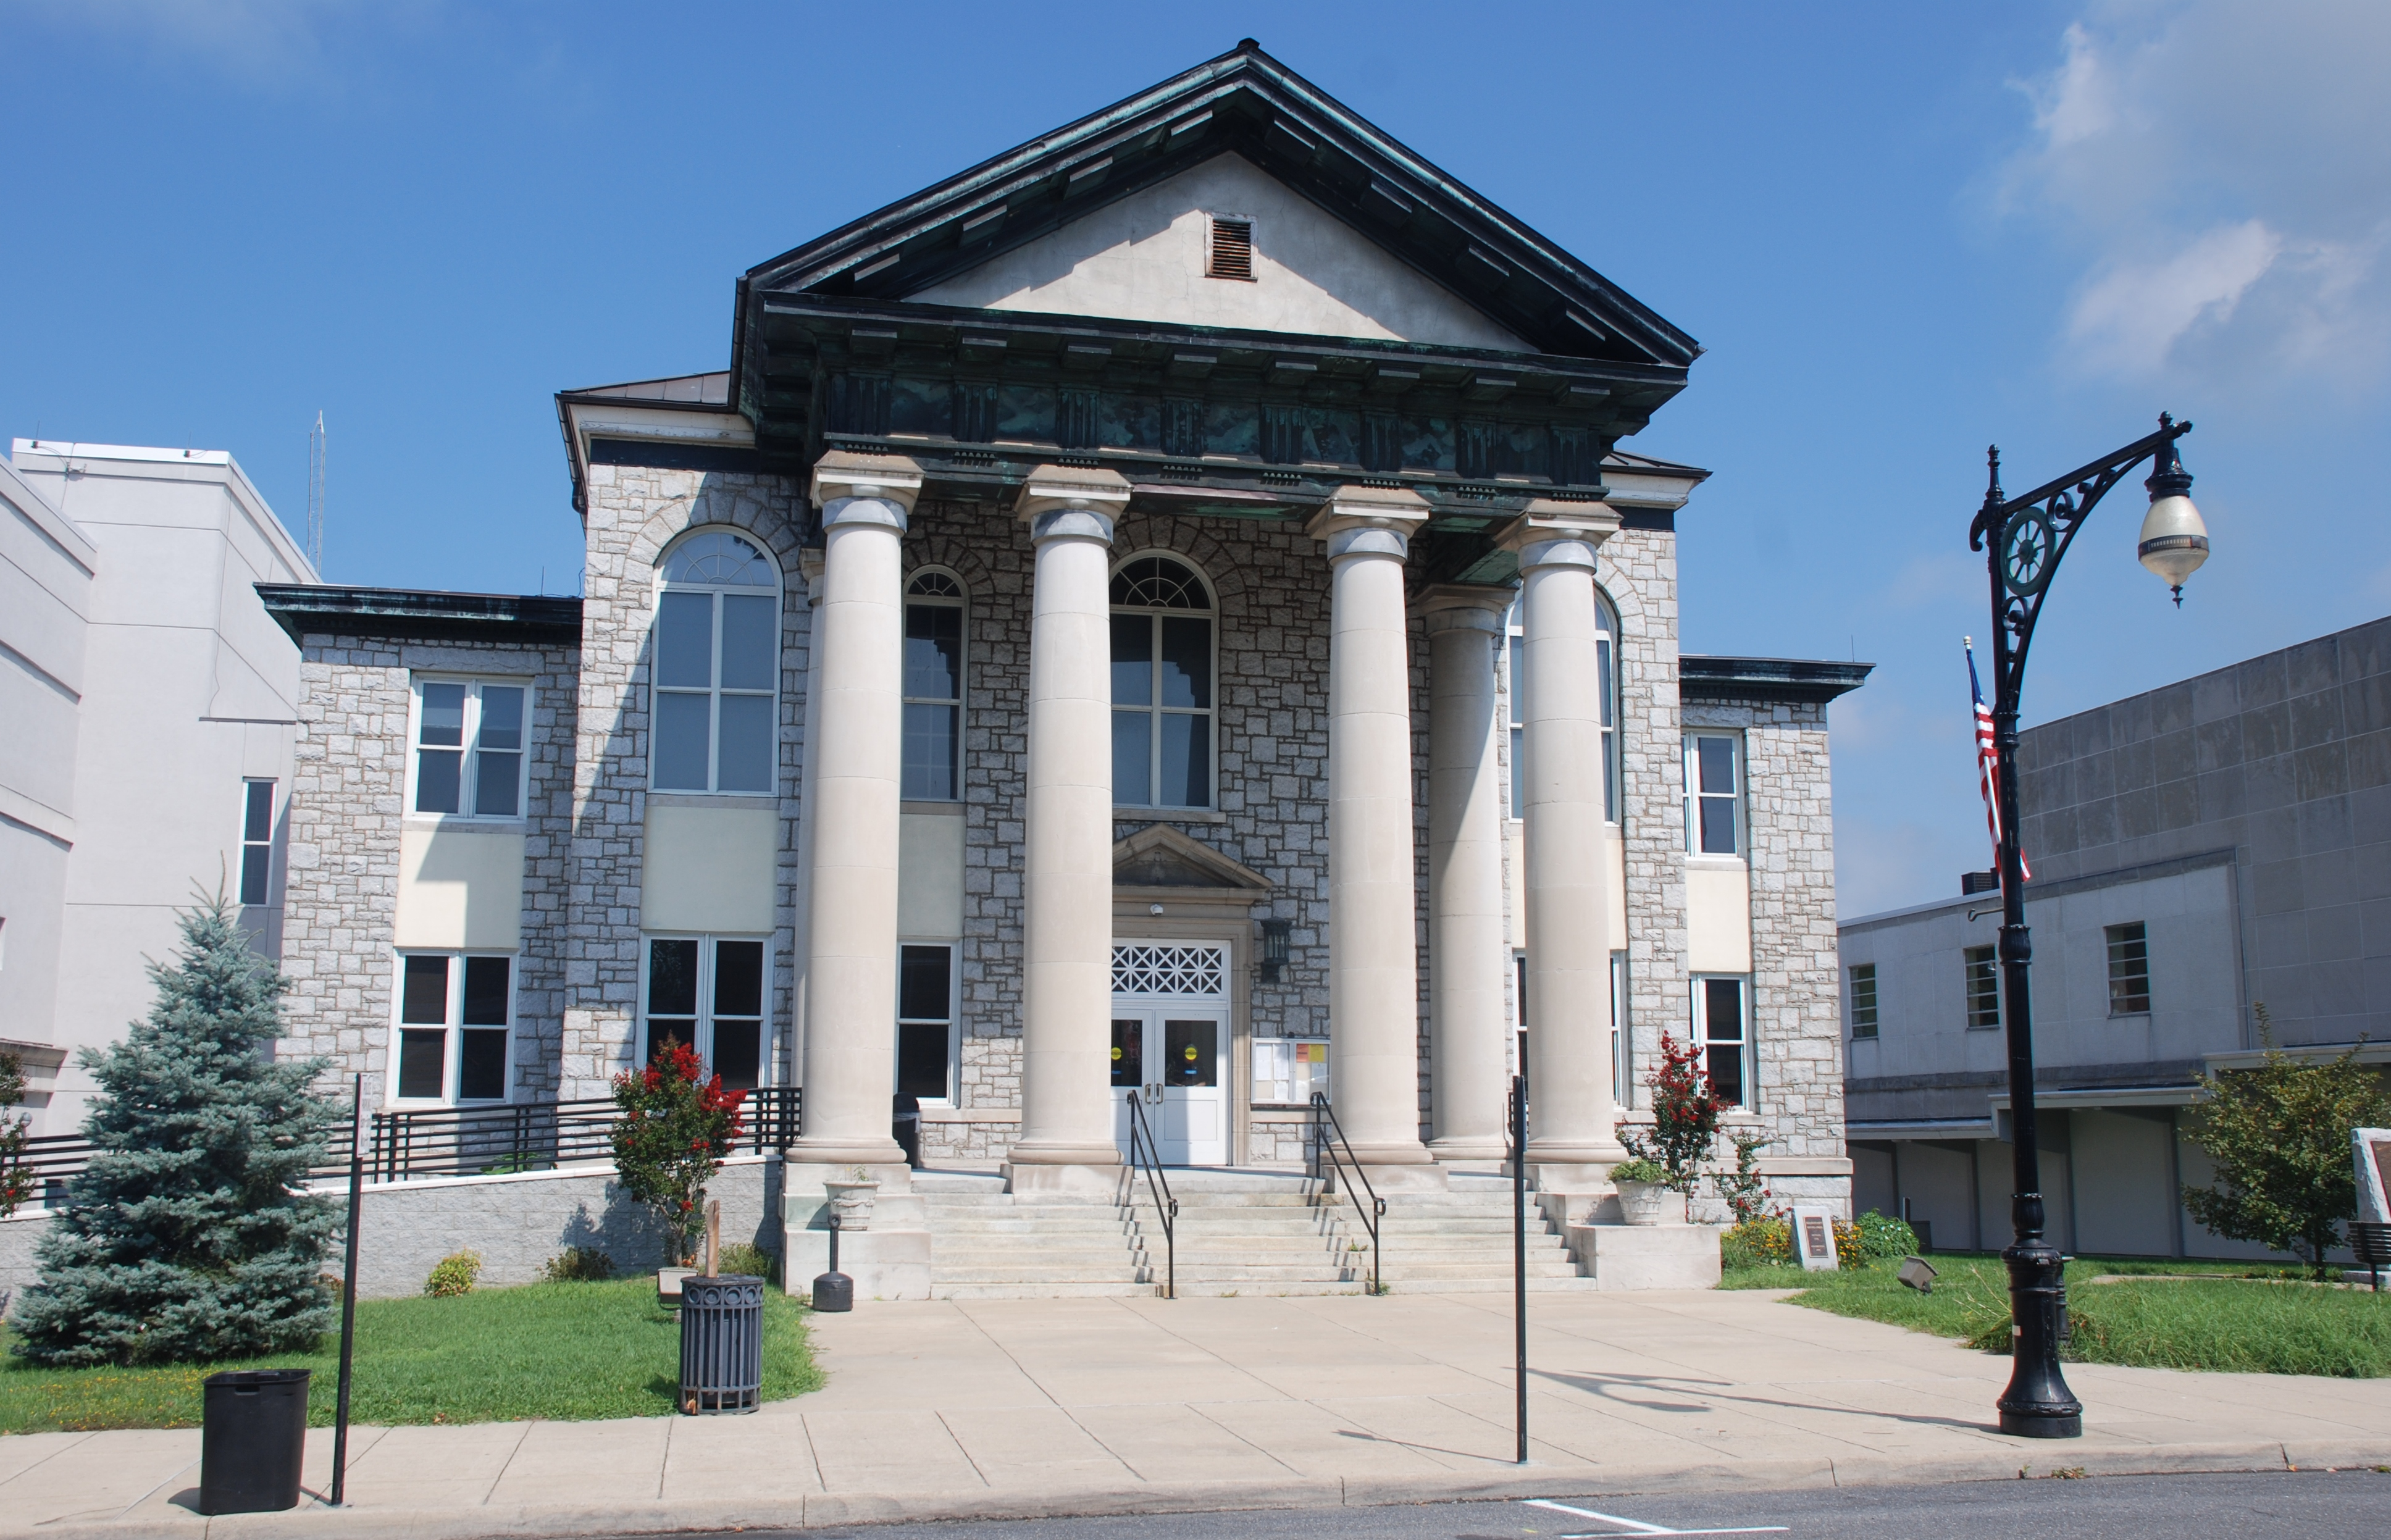 File:Covington, Va - Allegheny General District Court.jpg ... Pictures Of Courts